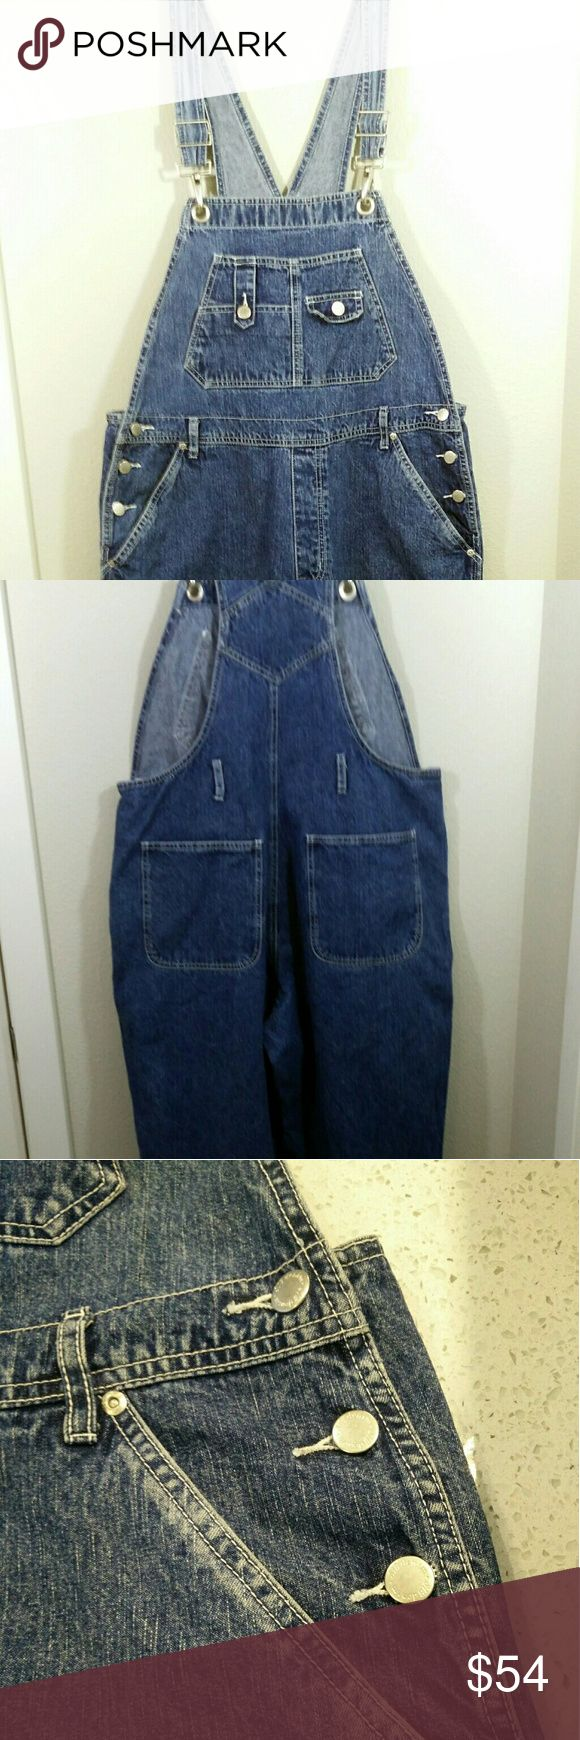 """90's St John's Bay Denim Carpenter Overalls VTG Absolutely awesome vintage piece in excellent condition - particularly for about its age!  Measurements: Waist band 40', Inseam 30"""", Leg Opening 9.5"""" St. John's Bay Jeans Overalls"""